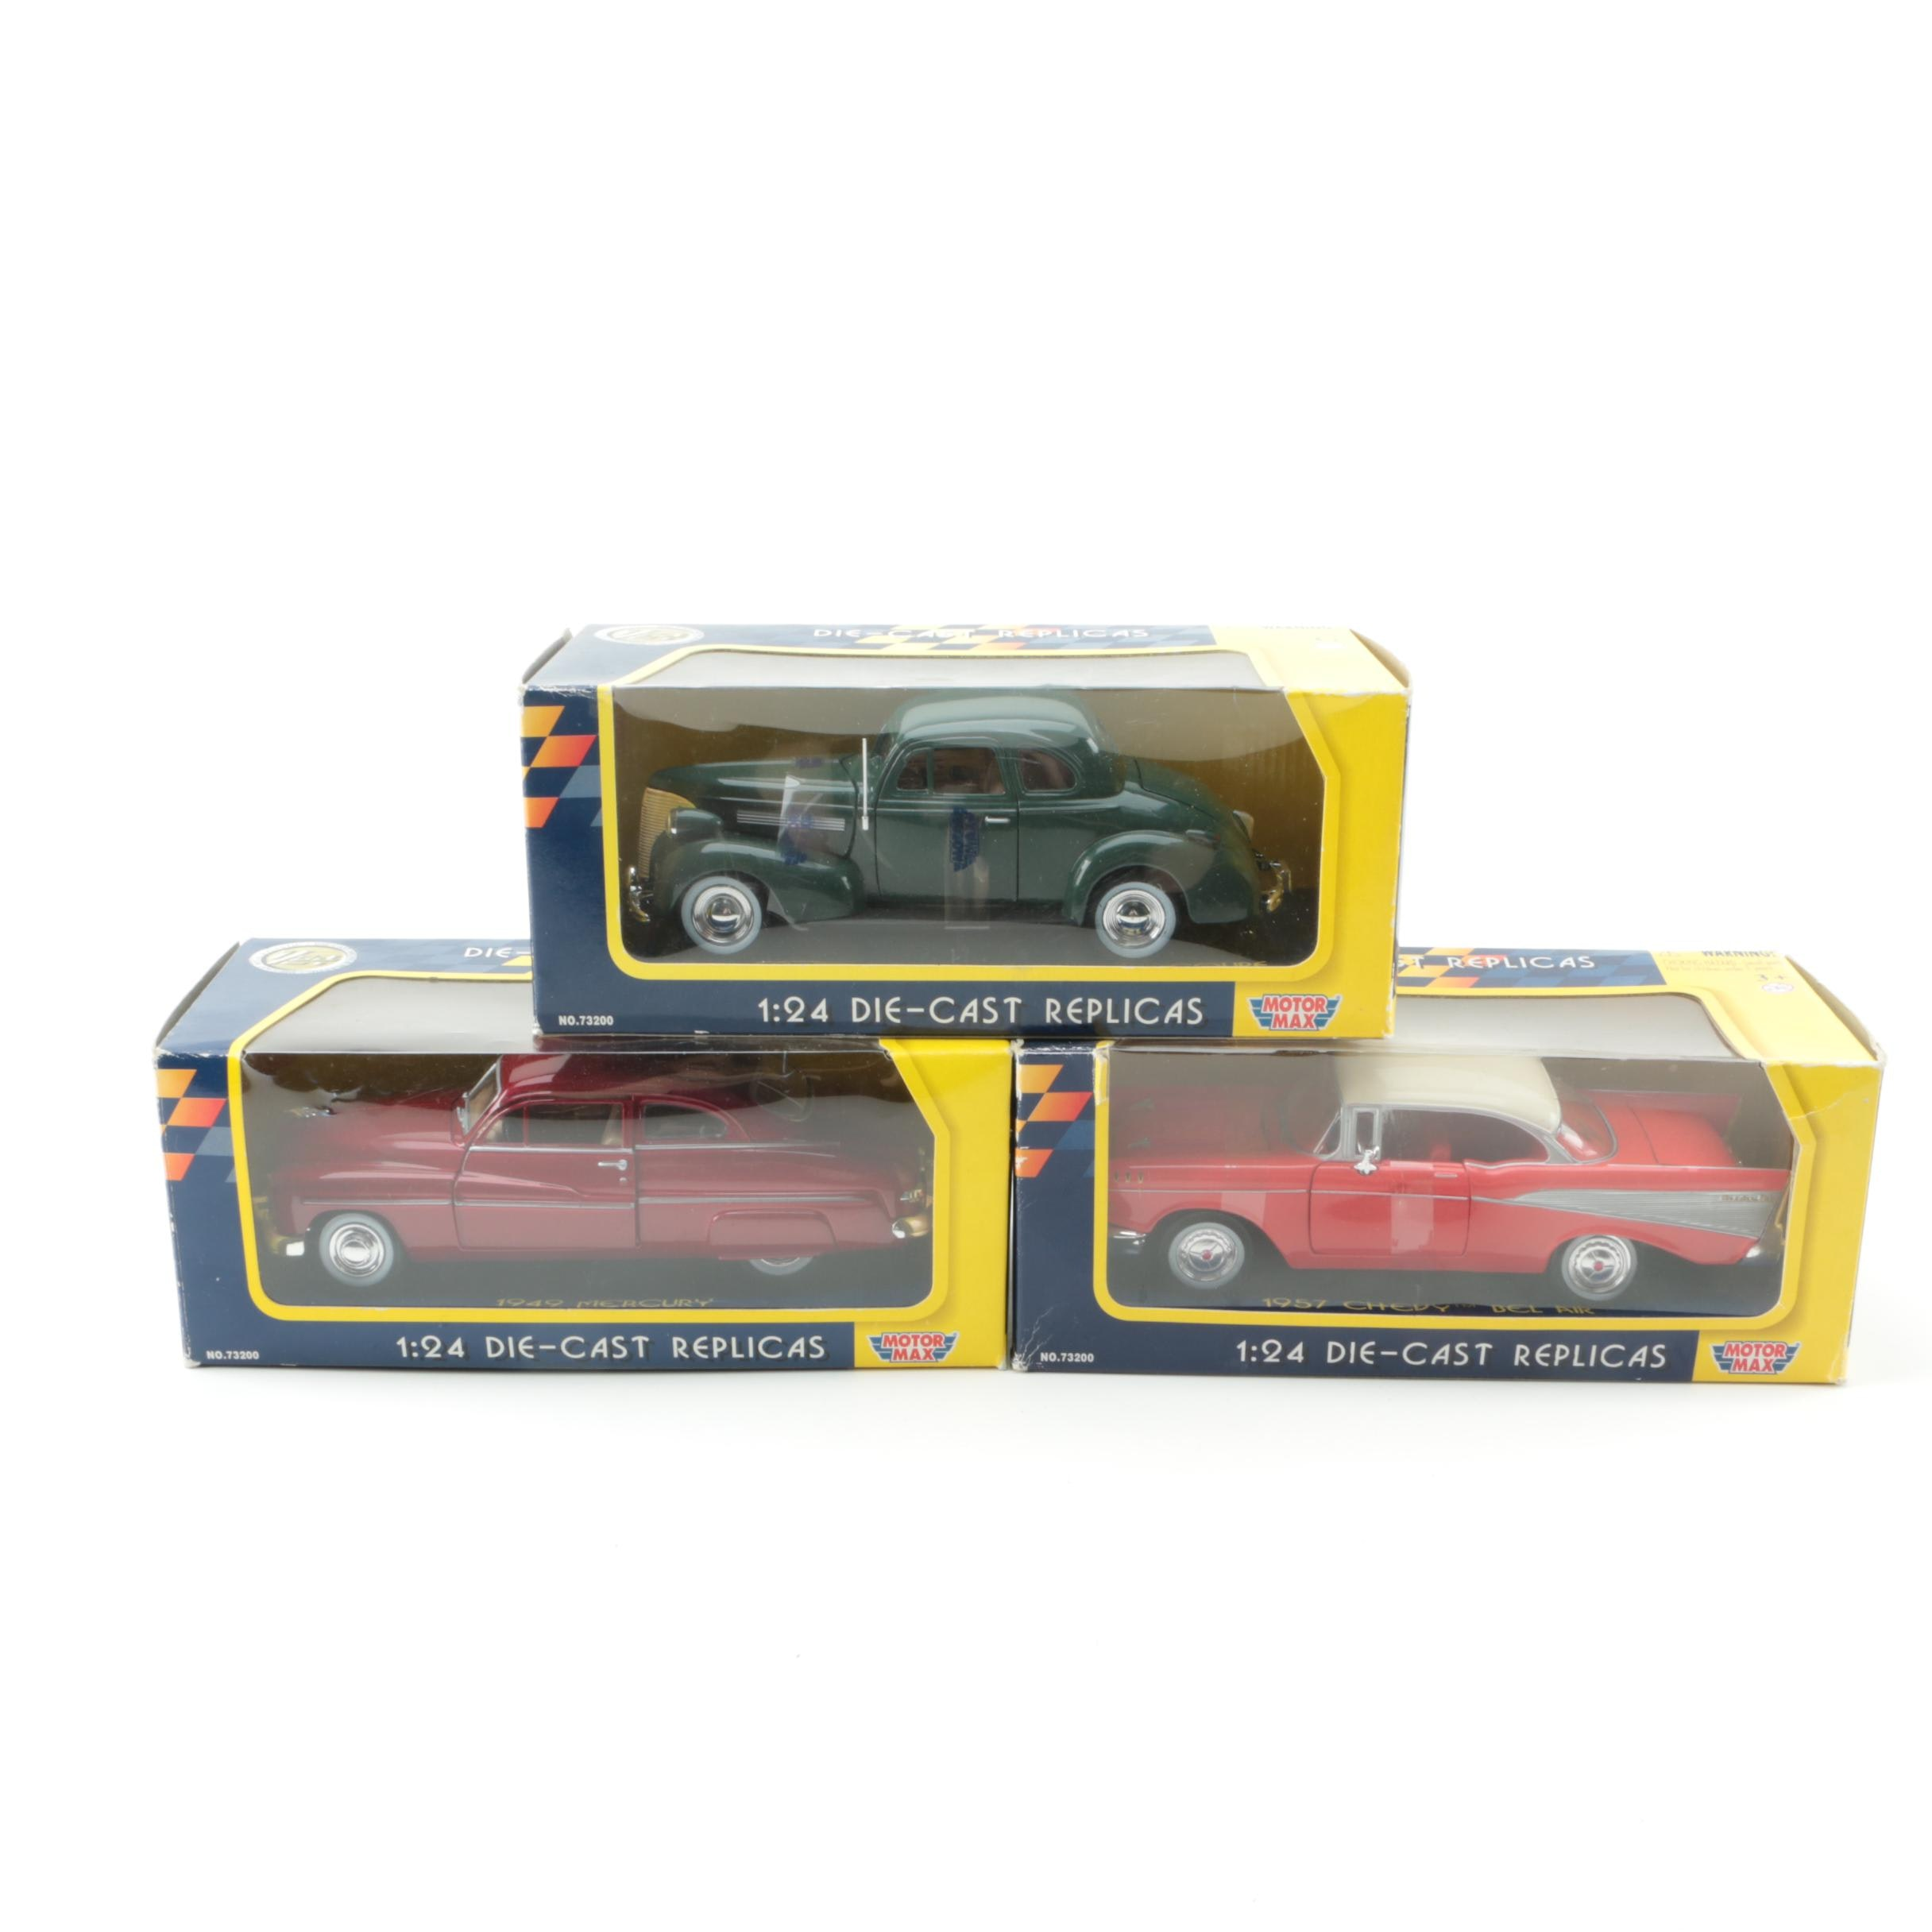 1/24 Scale Die Cast Replica Cars by Motormax